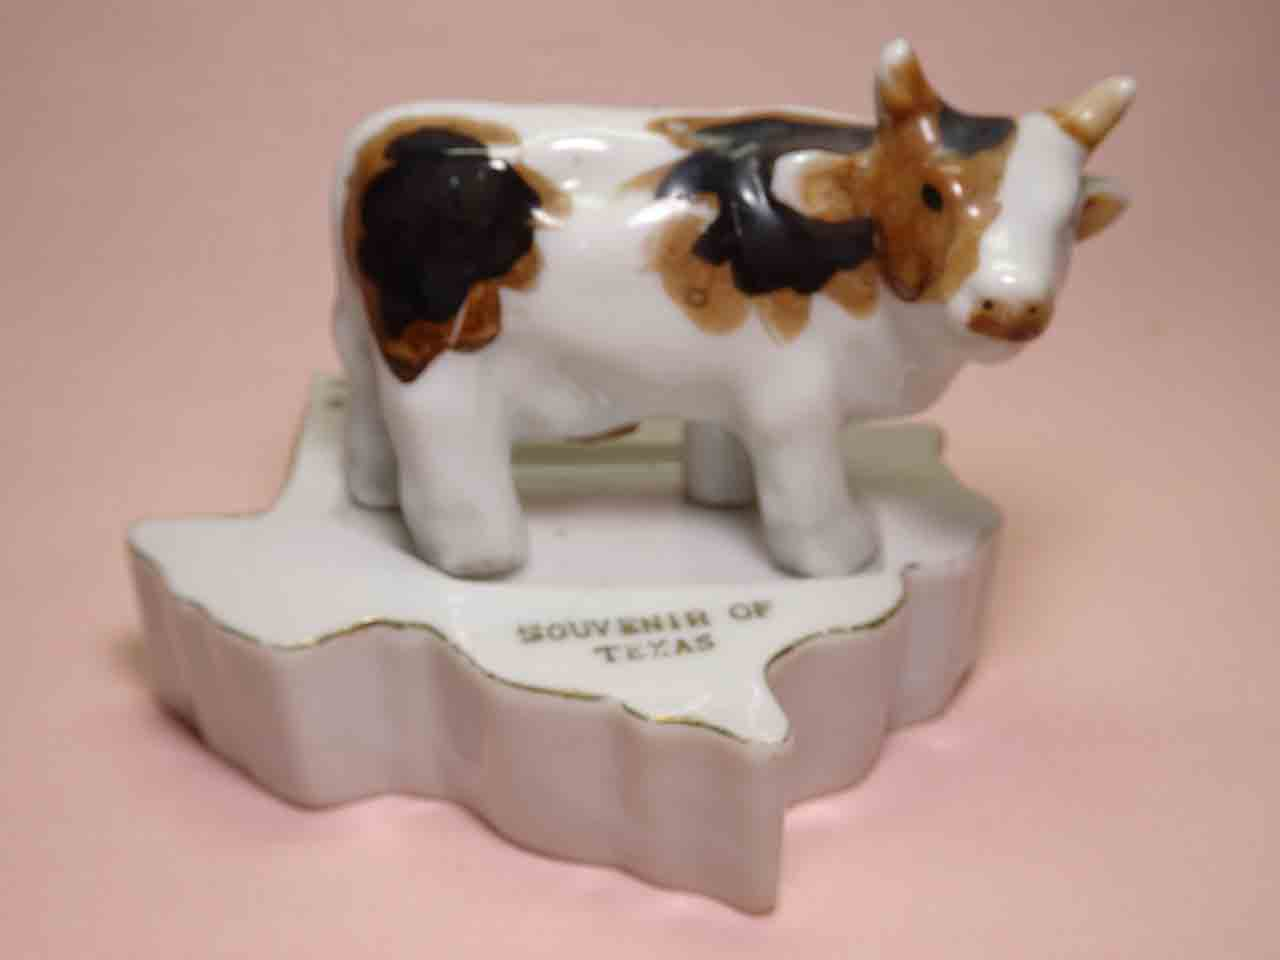 Texas with cattle salt and pepper shakers